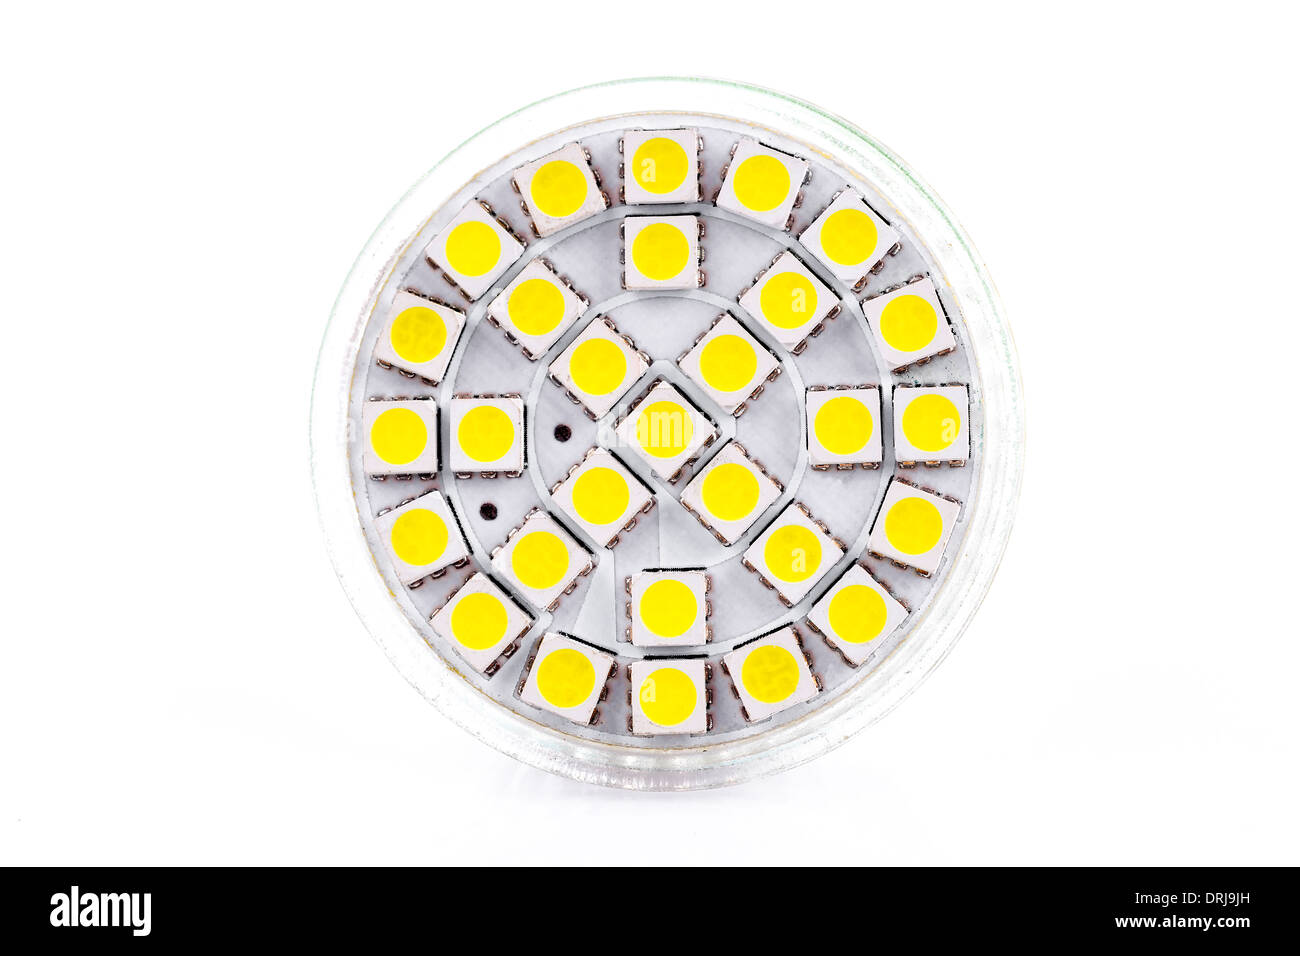 Closeup Led Stock Of On Alamy White Photo66170905 Lamp HIeY9WDE2